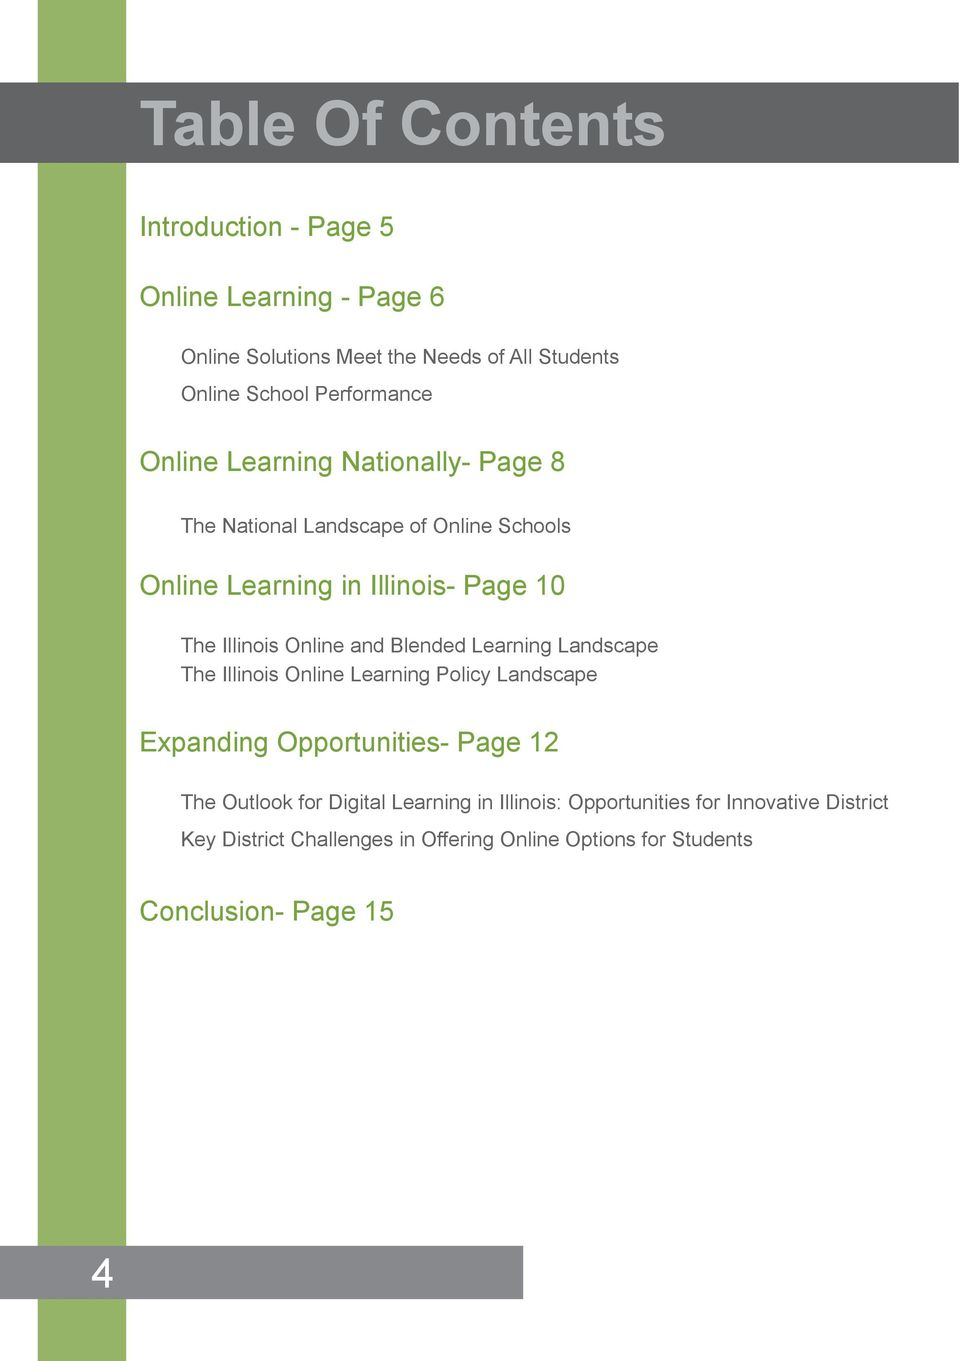 Online and Blended Learning Landscape The Illinois Online Learning Policy Landscape Expanding Opportunities- Page 12 The Outlook for